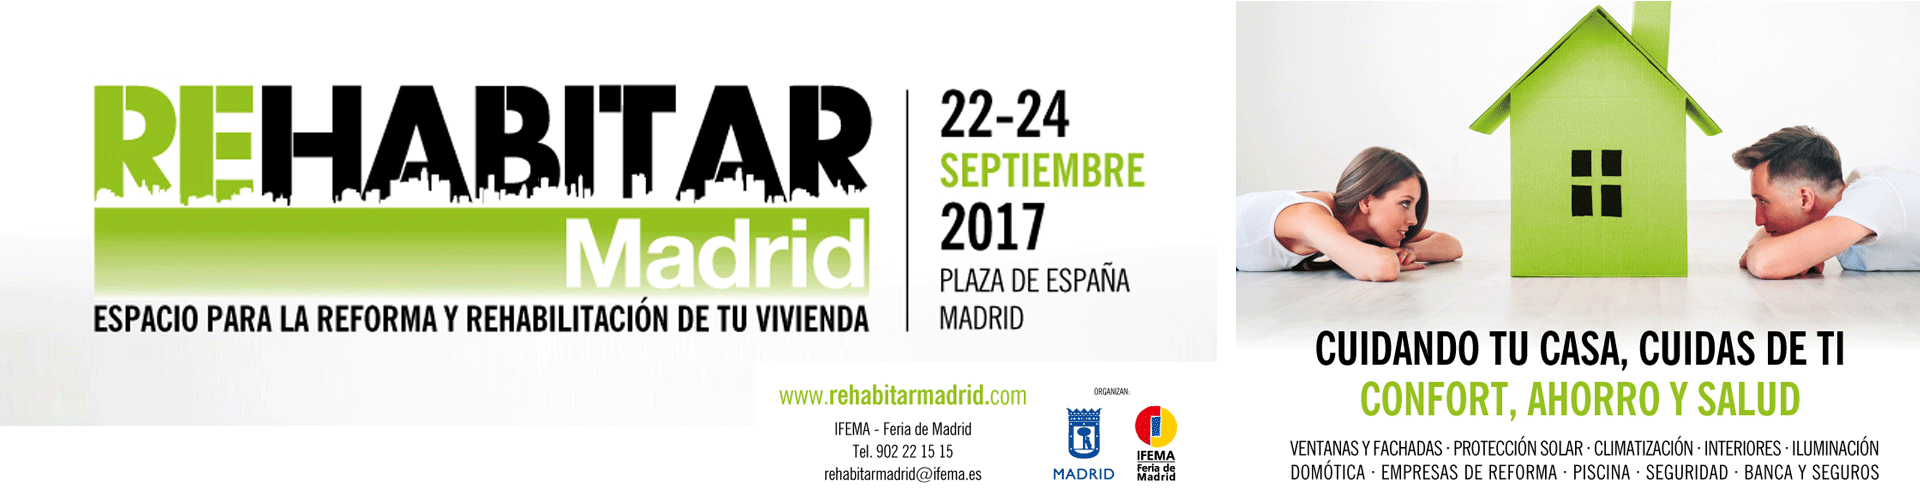 rehabitar-madrid-2017